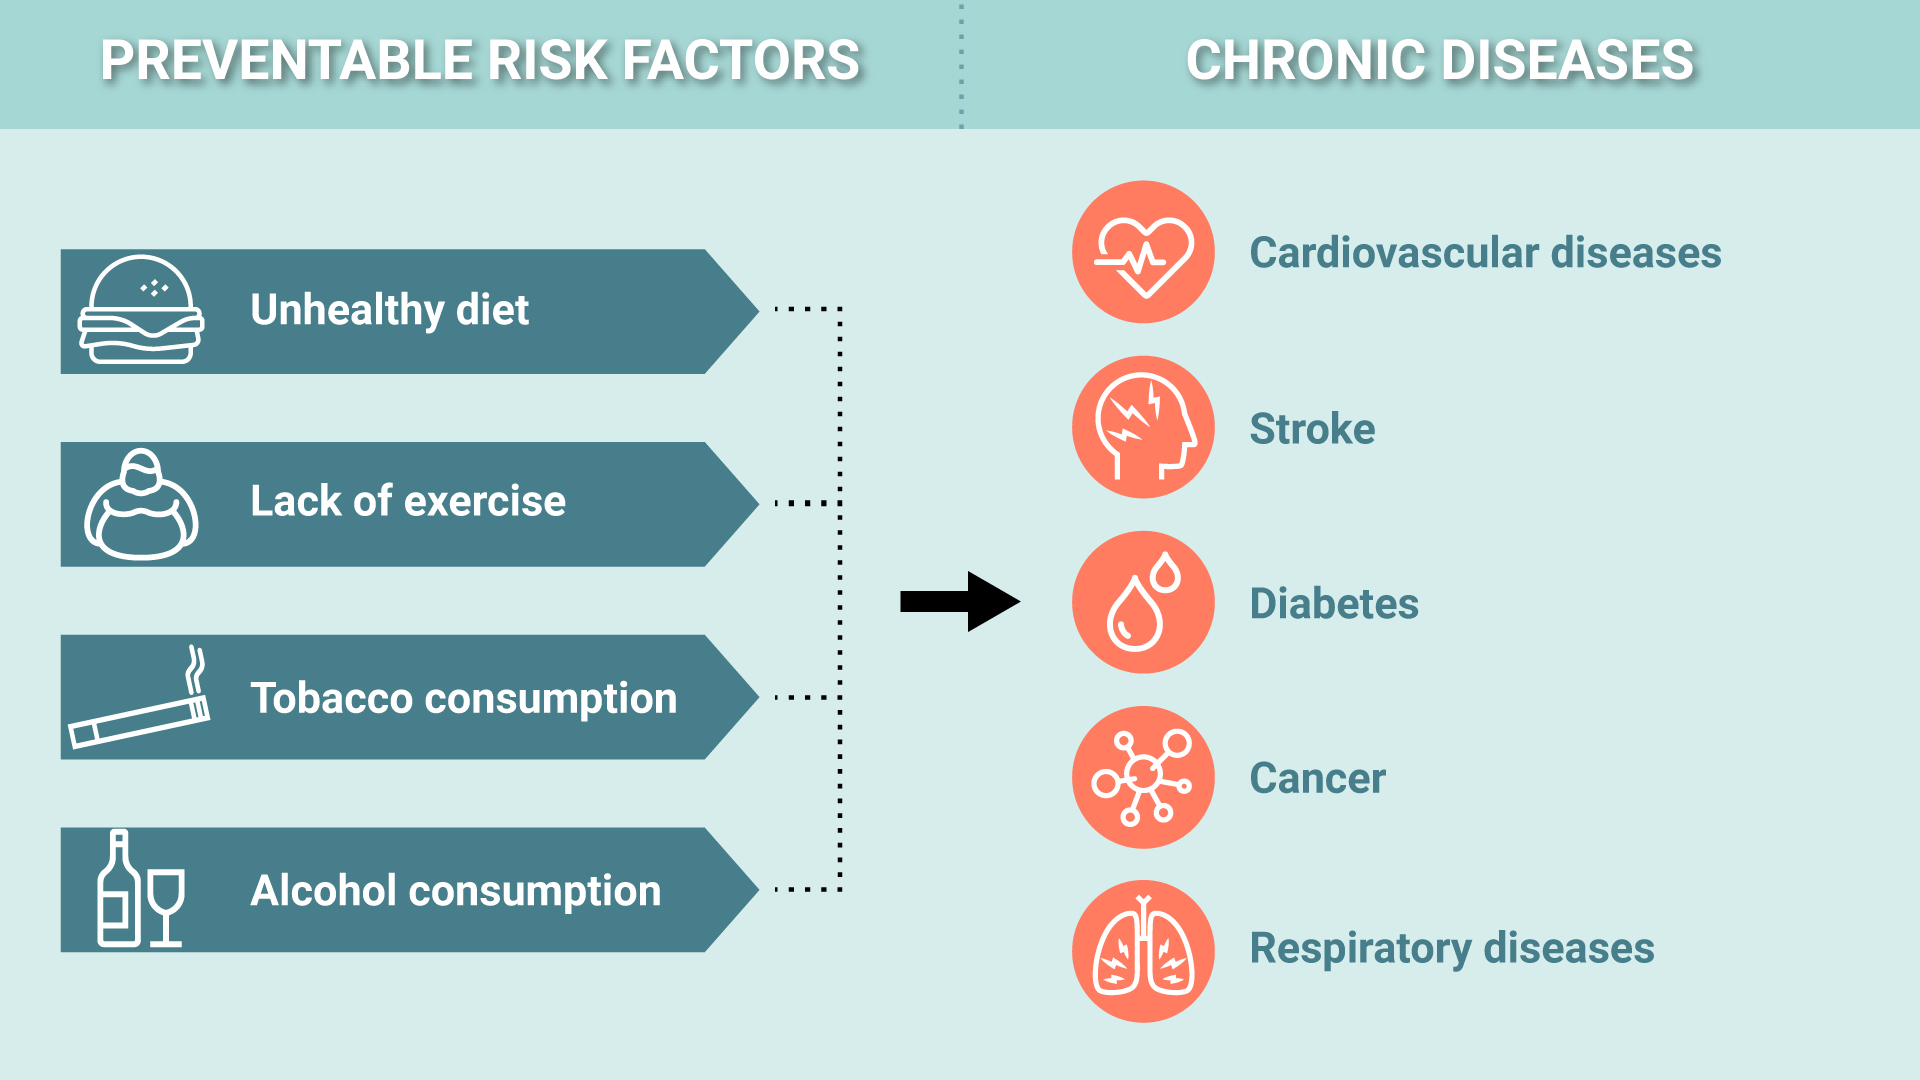 Preventable Risk Factors